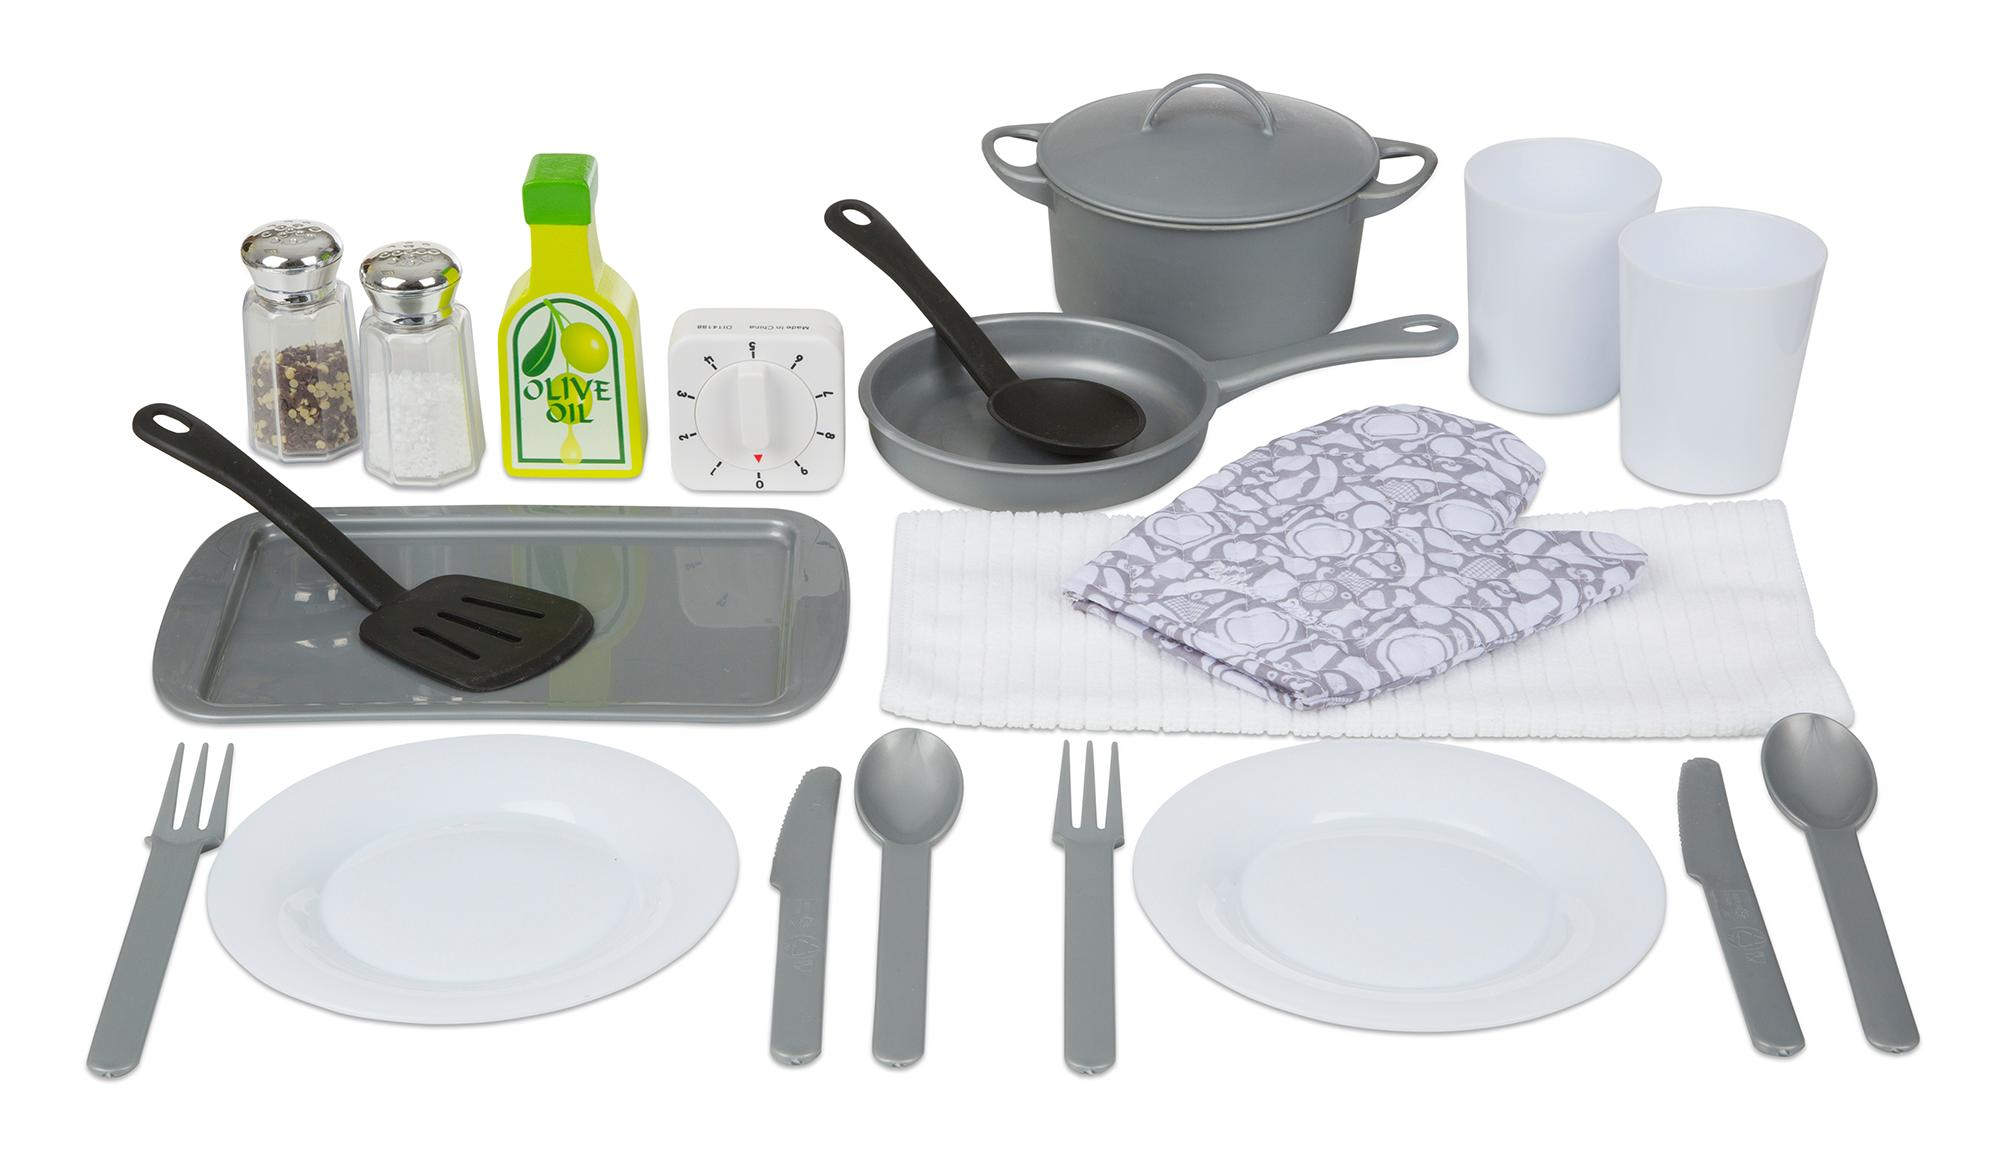 amazoncom melissa  doug piece play kitchen accessories set  - from the manufacturer play